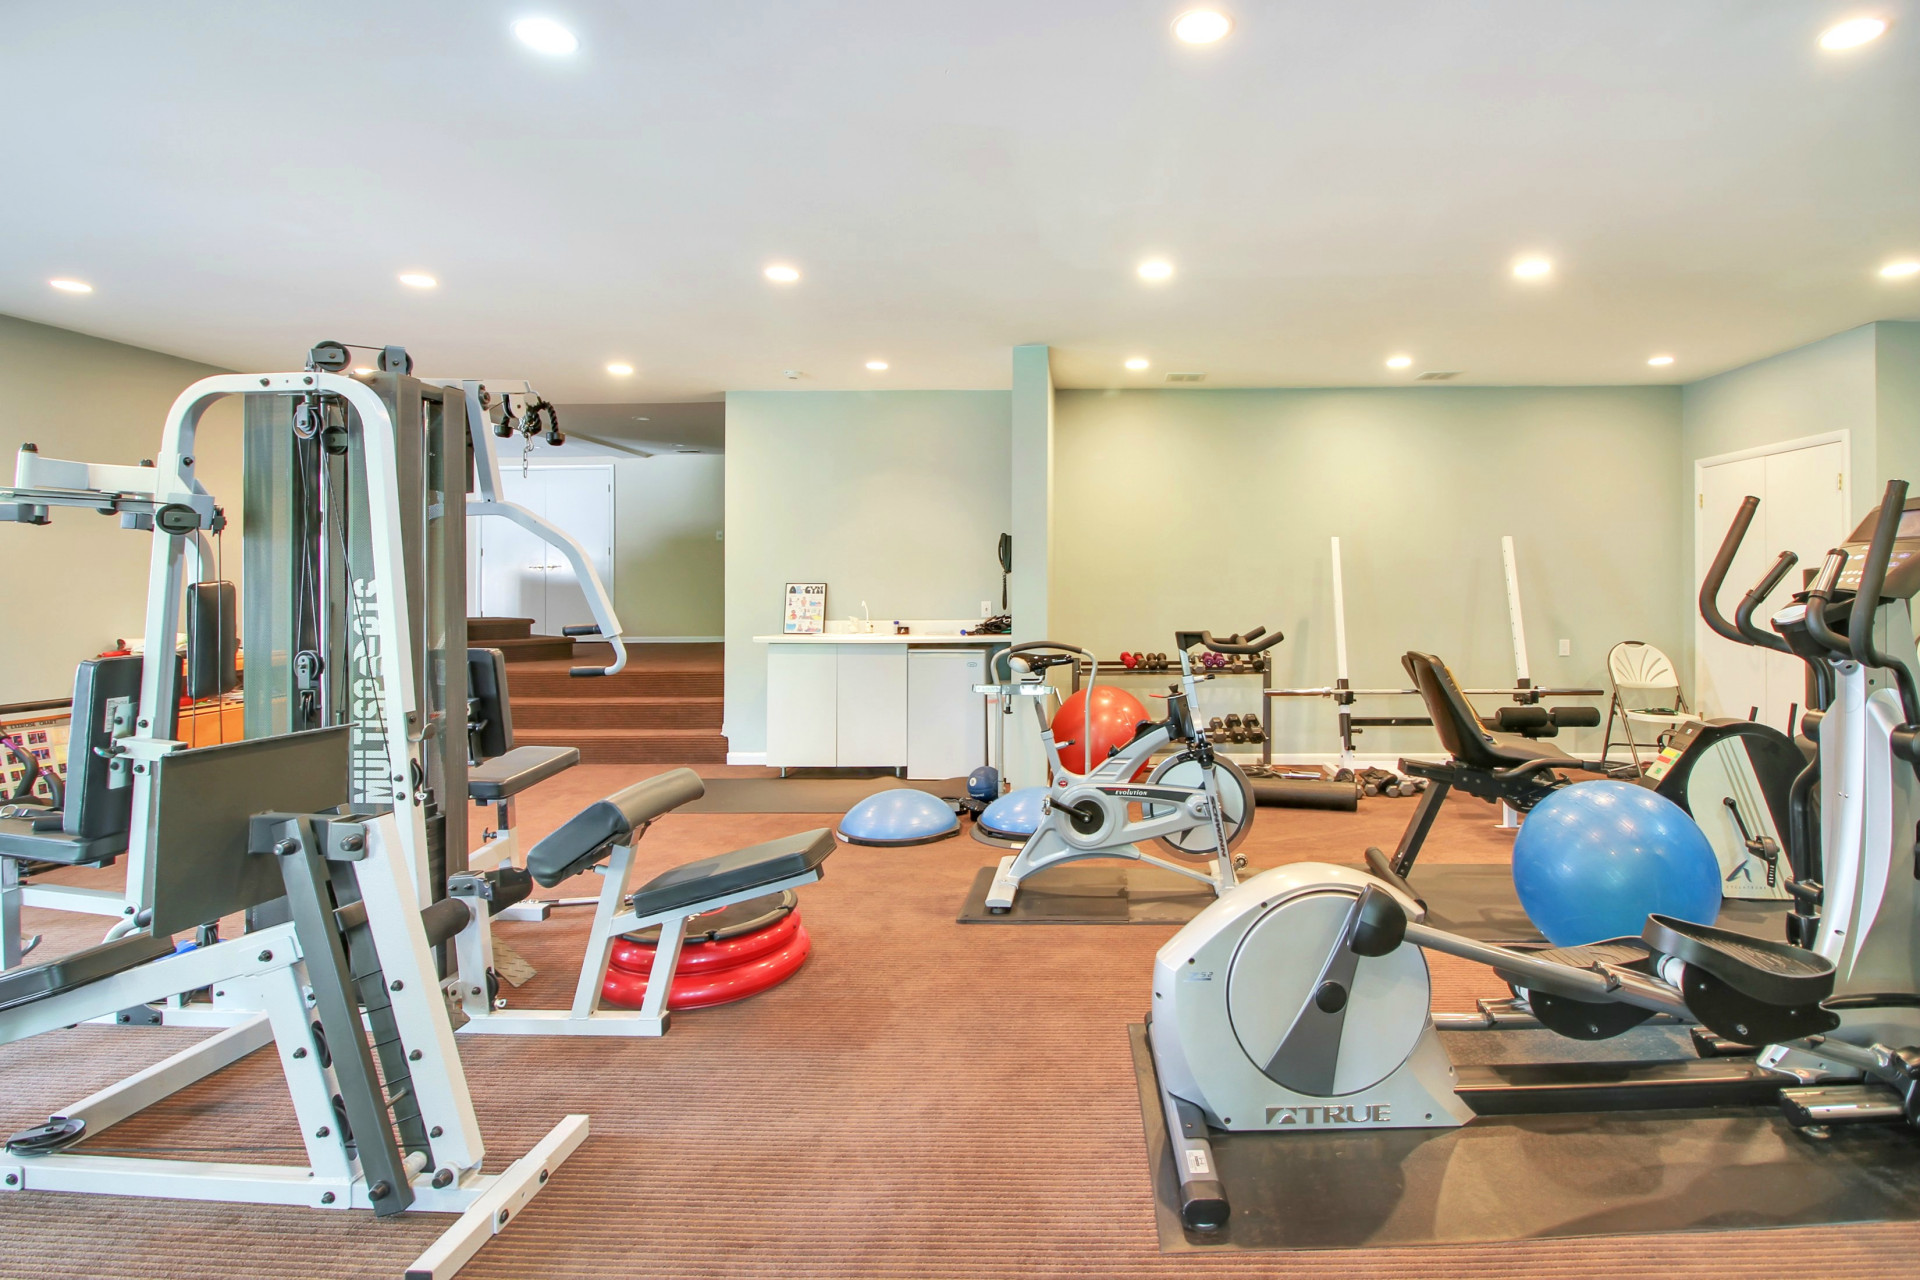 84 Shrewsbury Drive Exercise Room